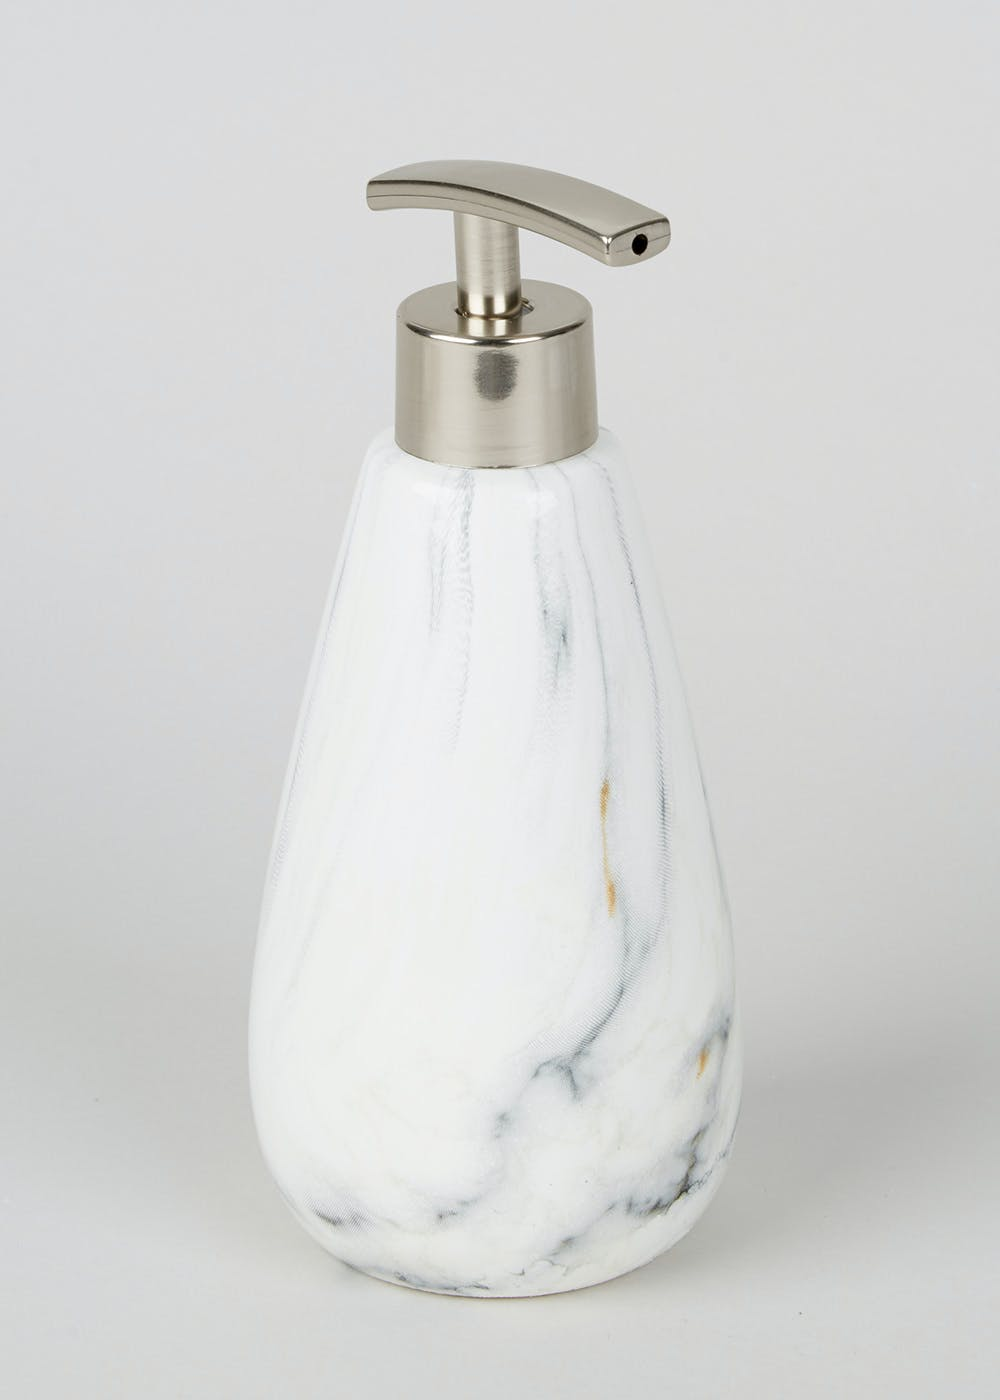 marble effect soap dispenser (cm x cm). marble effect soap dispenser (cm x cm) – matalan